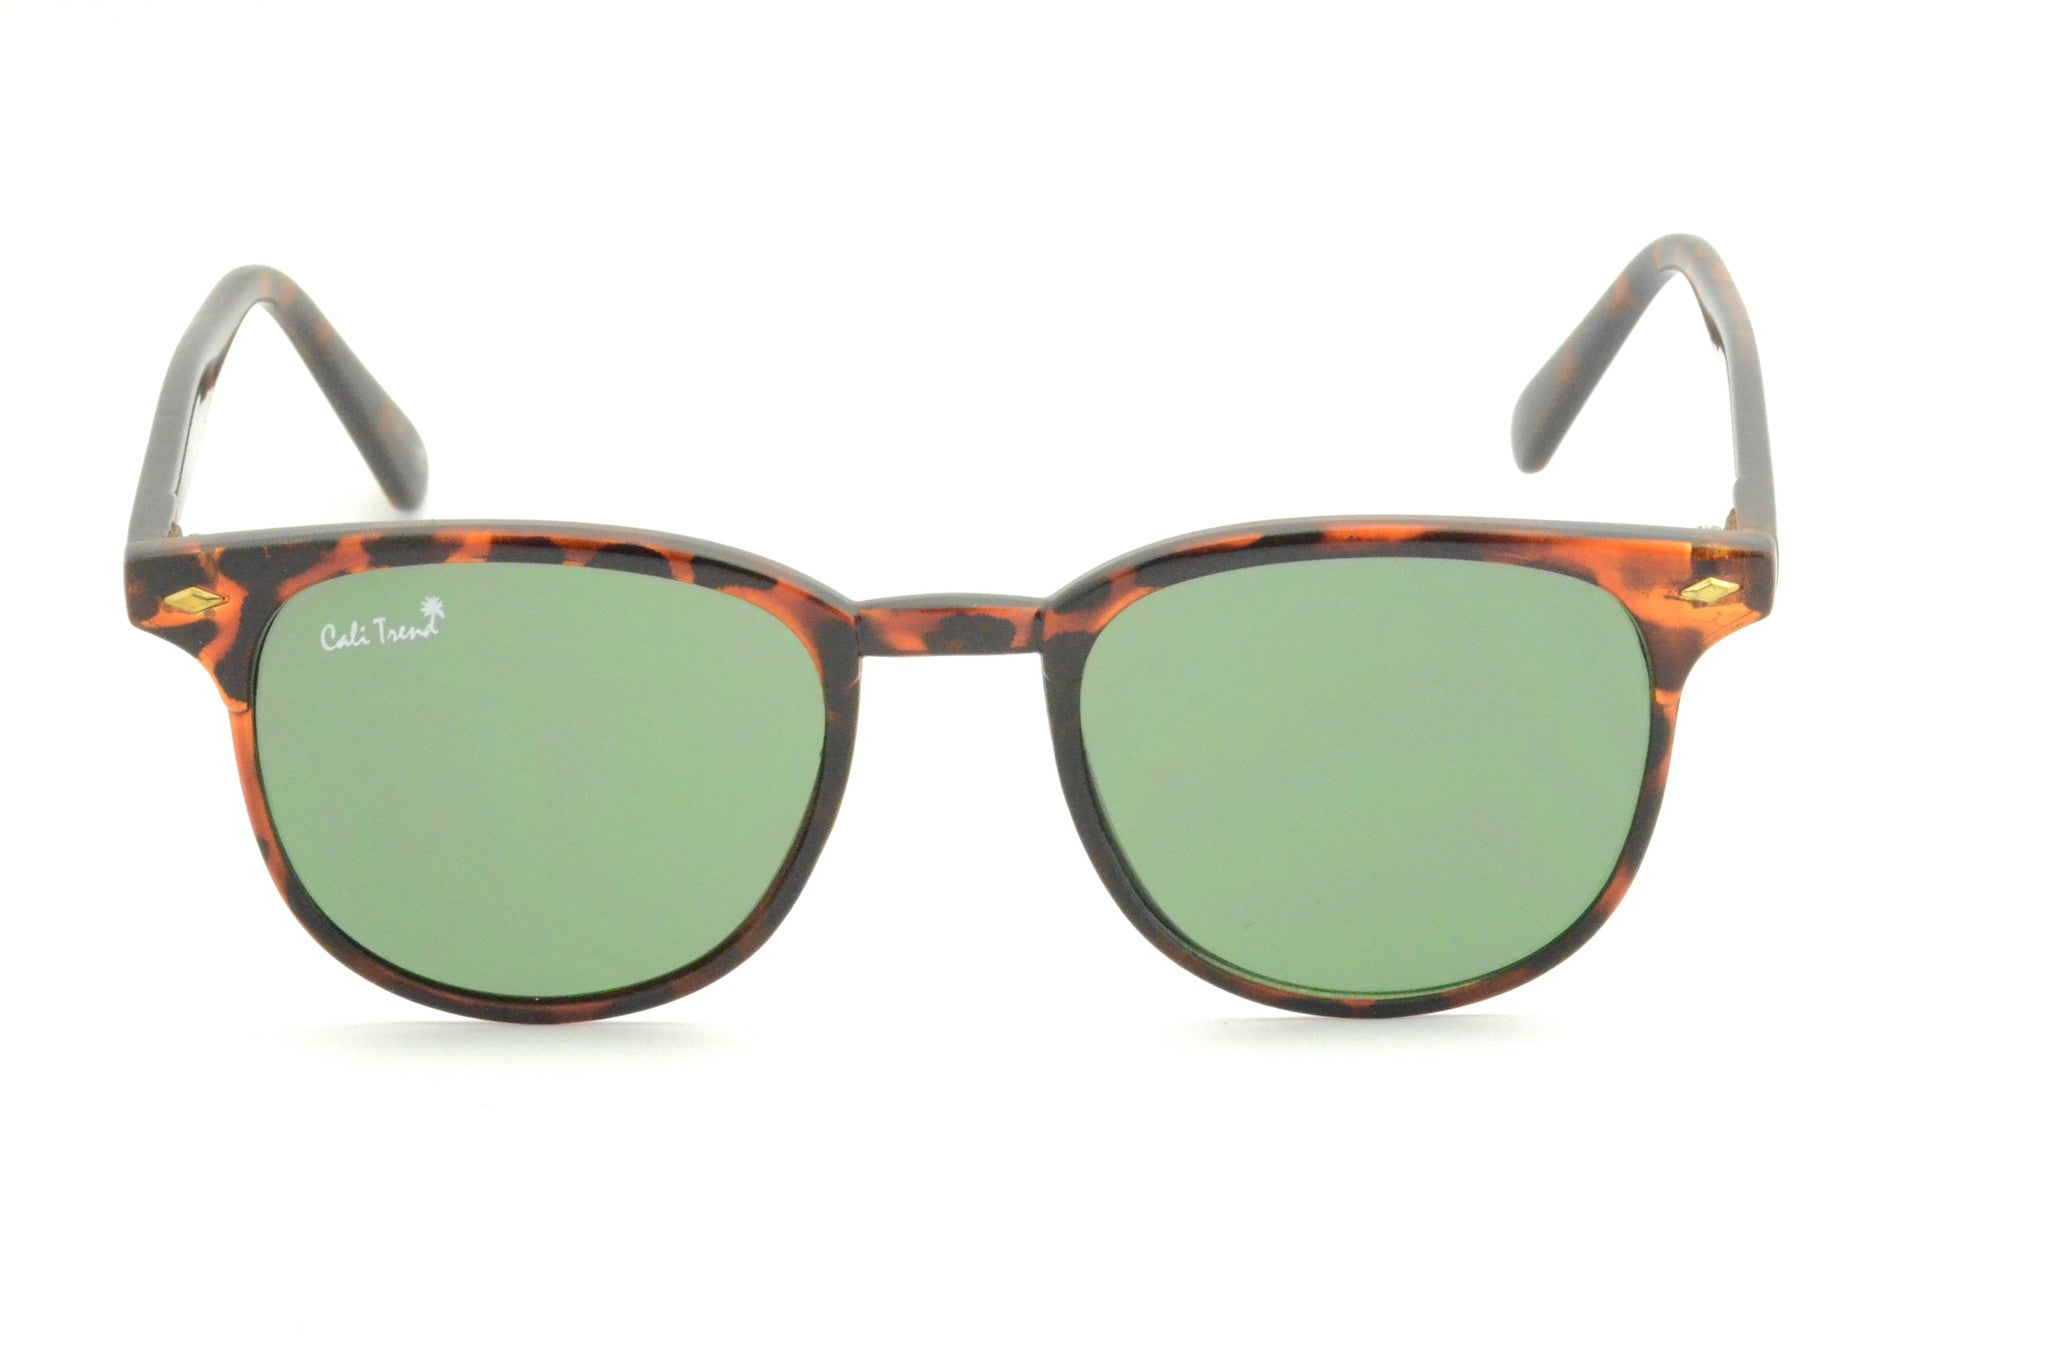 4424a000db Tortoise Shell Round Sunglasses Dark Green Lens Small Frame Cali Trend